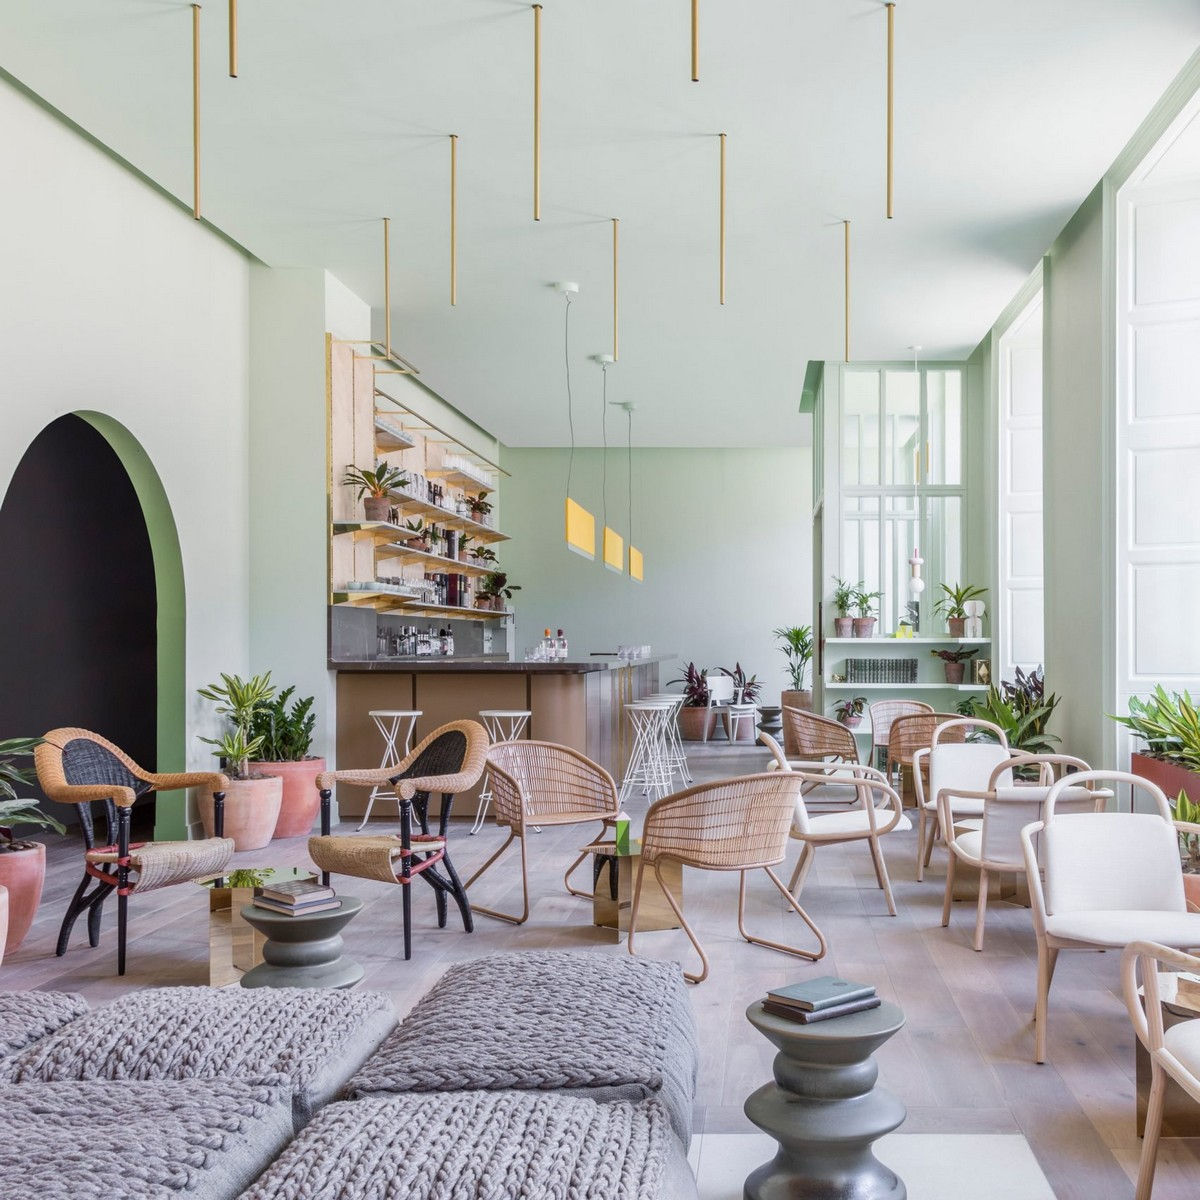 Top 10 Best Hotels of 2017: A Dezeen Selection | Thinking about next years vacation? We show you some awesome locations. #tophotels #hoteldesign #besthotels #luxuryhotels #traveldestinations #centertables best hotels Top 10 Best Hotels of 2017: A Dezeen Selection eden locke hotel grzywinski pons interiors hotels london uk dezeen sq a 1 1704x1704